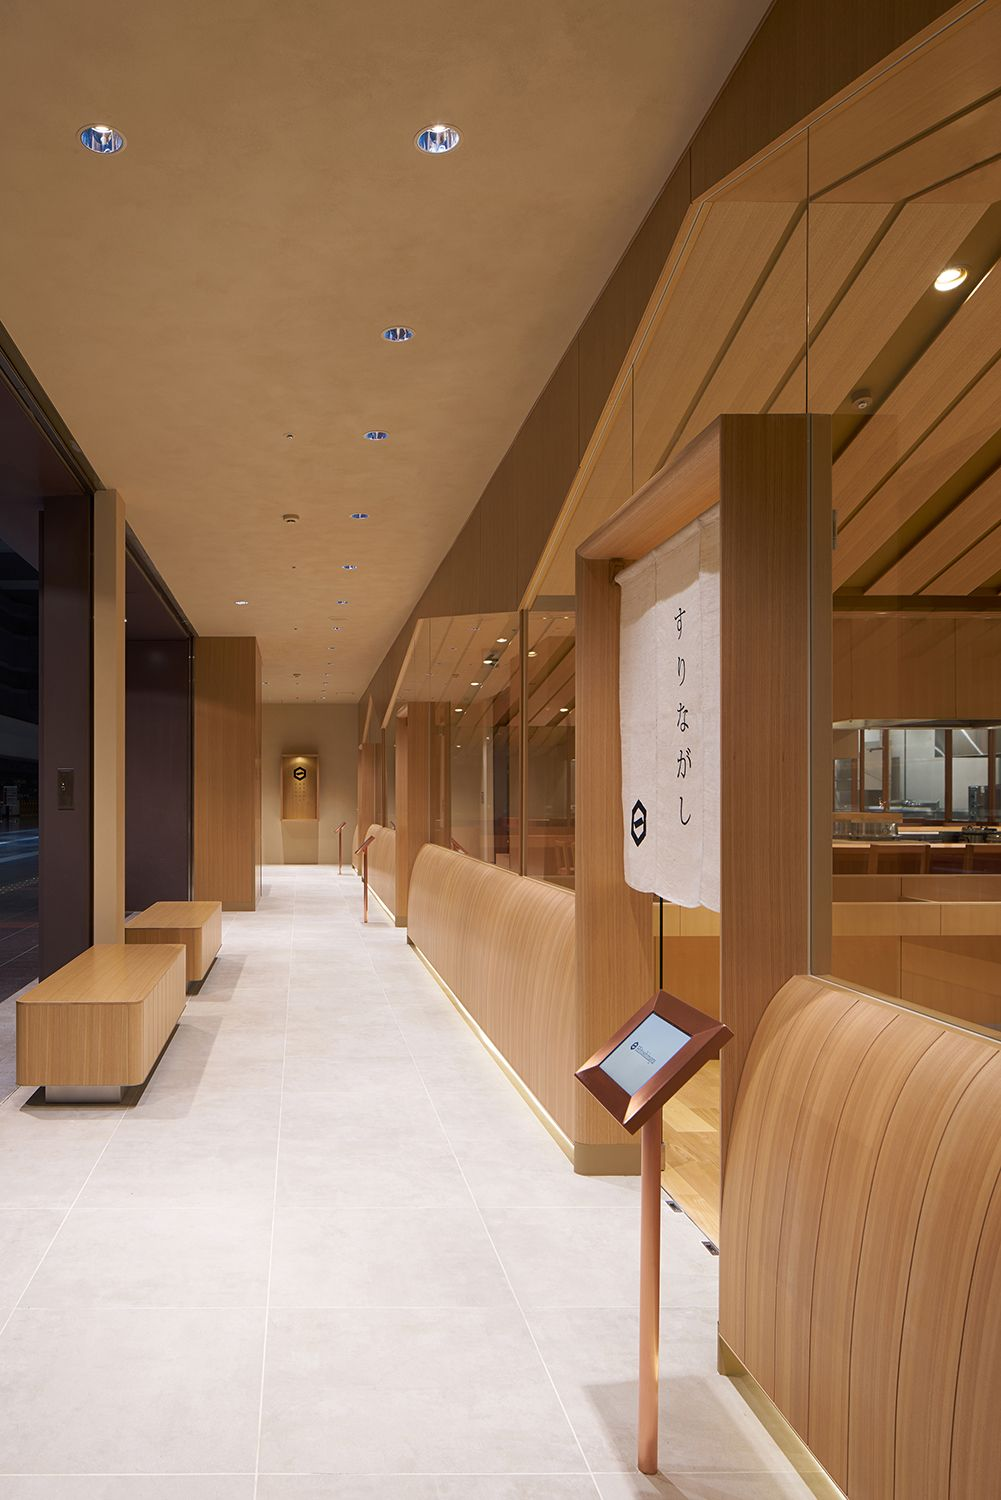 Hitoshinaya At Haneda Airport Domestic Terminal 1 By Ryo Matsui Architects